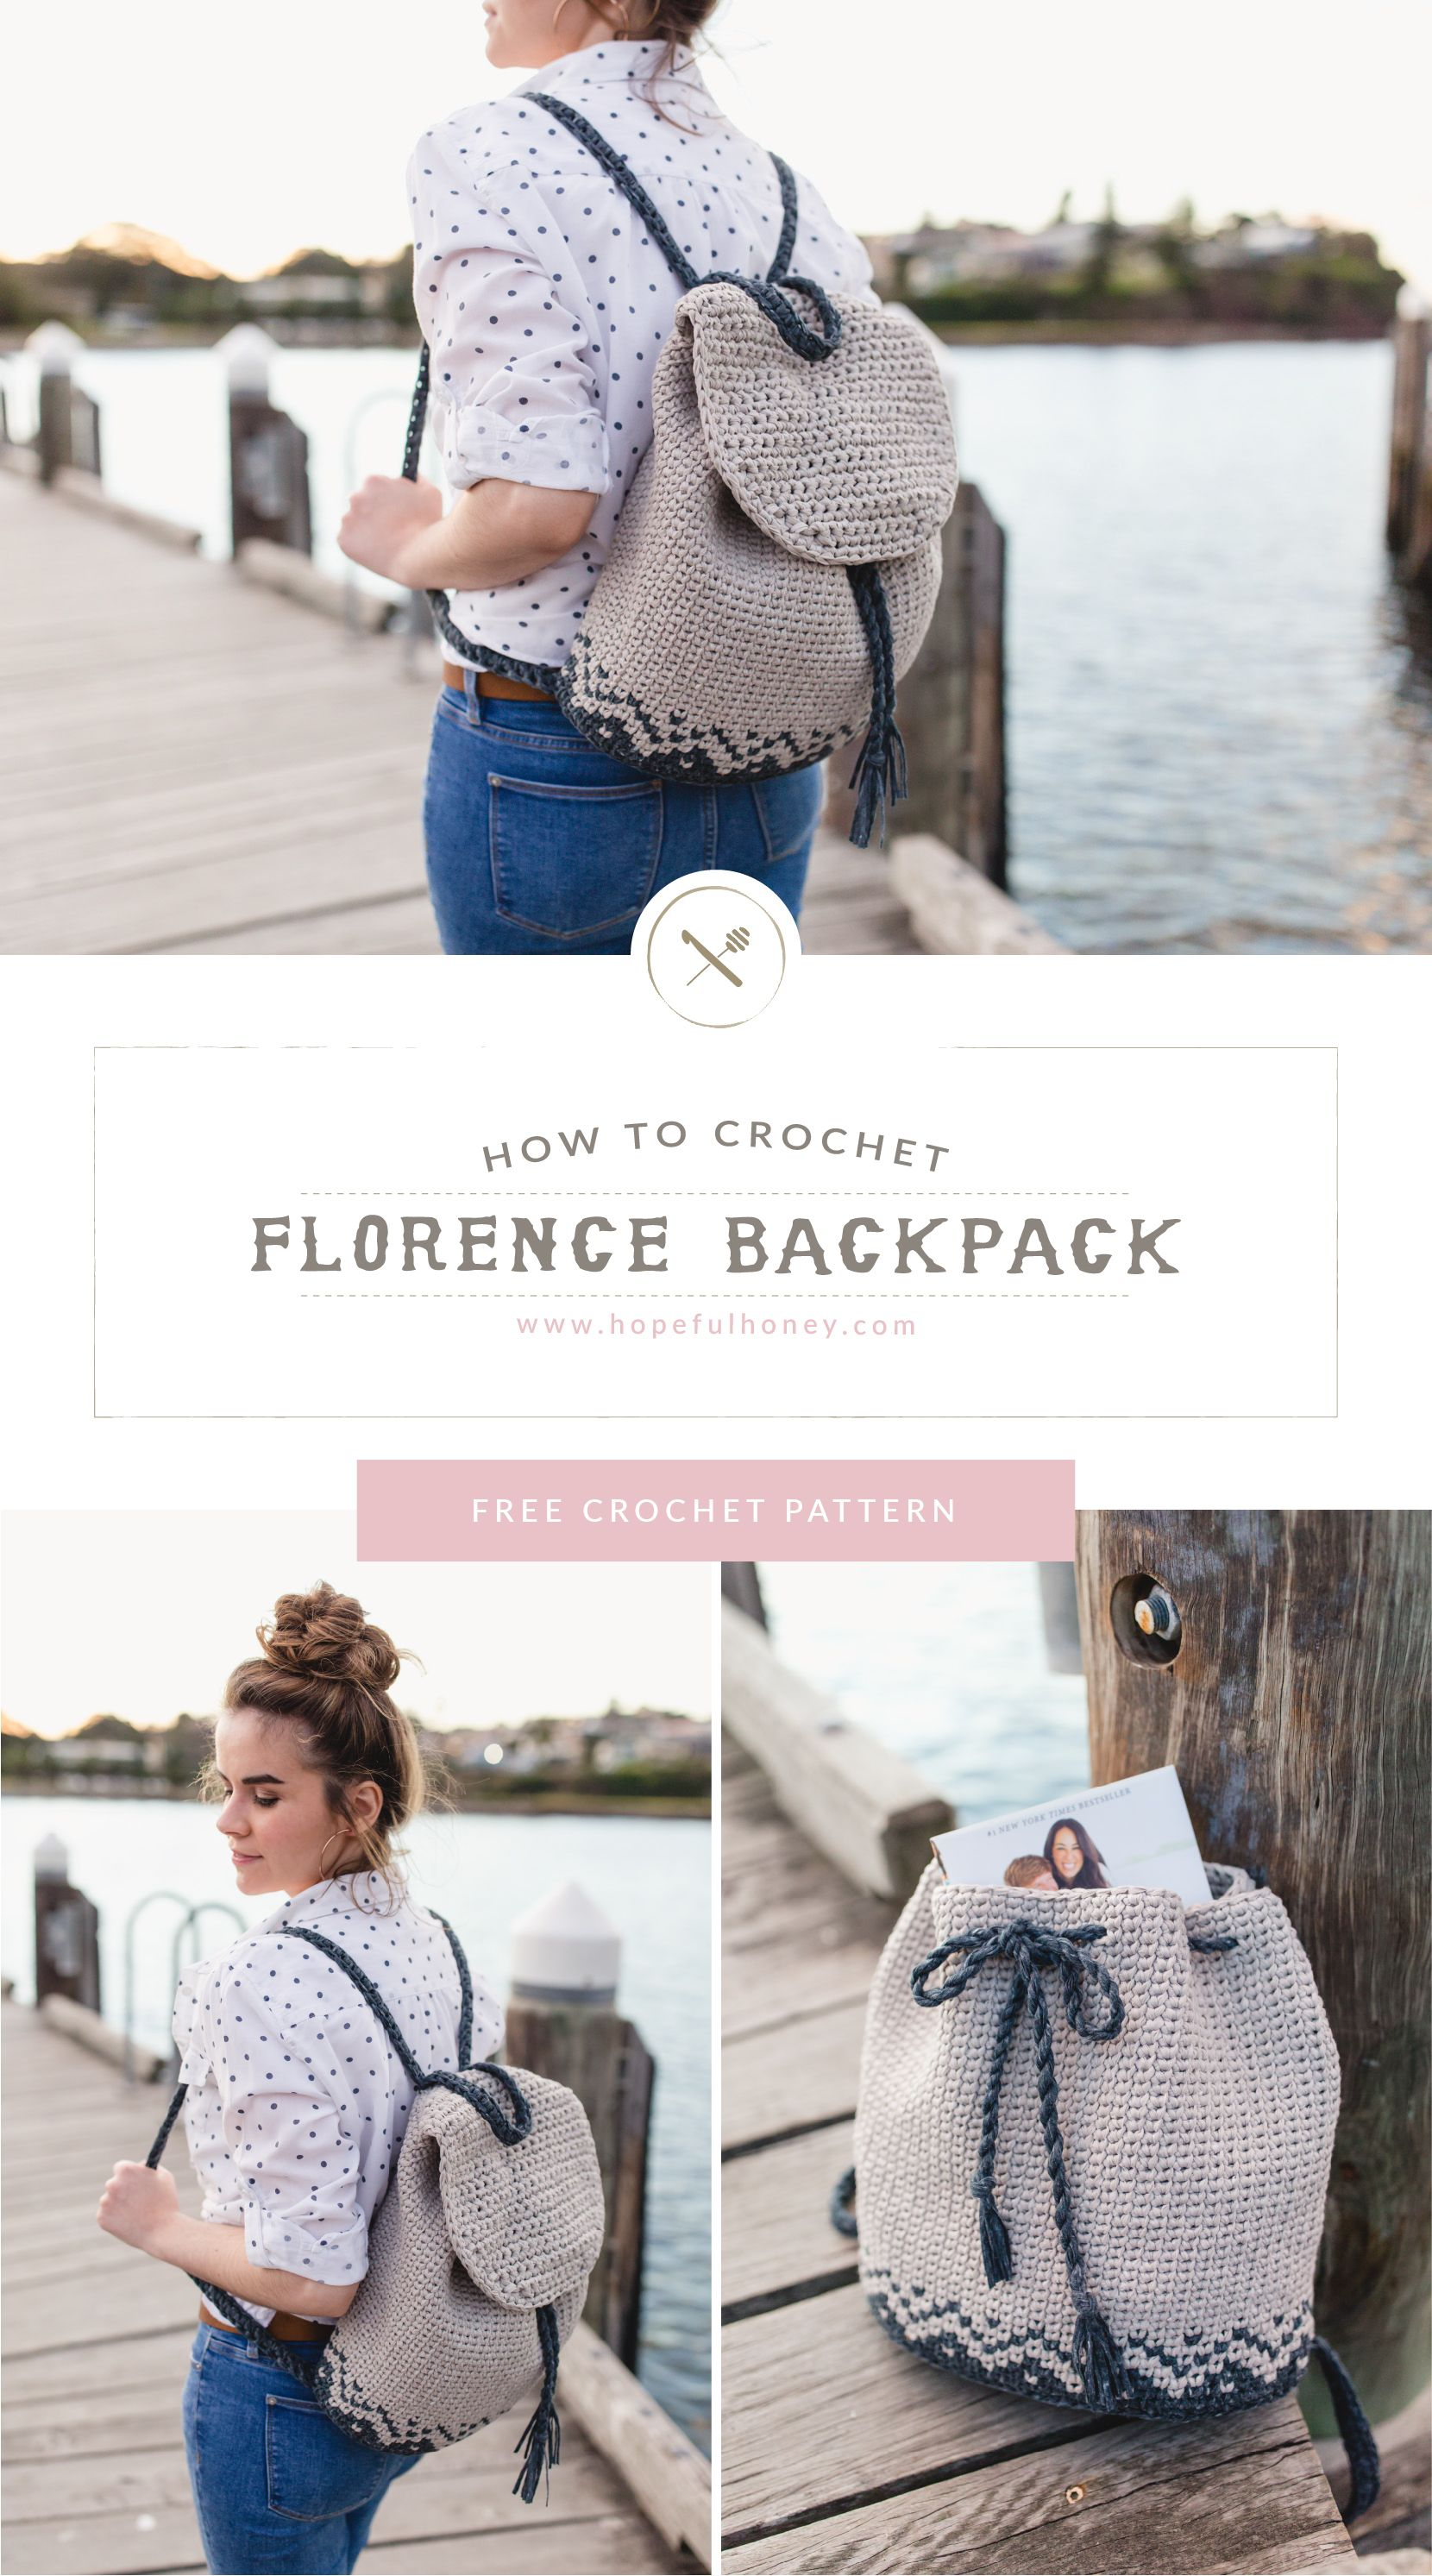 Florence Backpack Free Crochet Pattern by